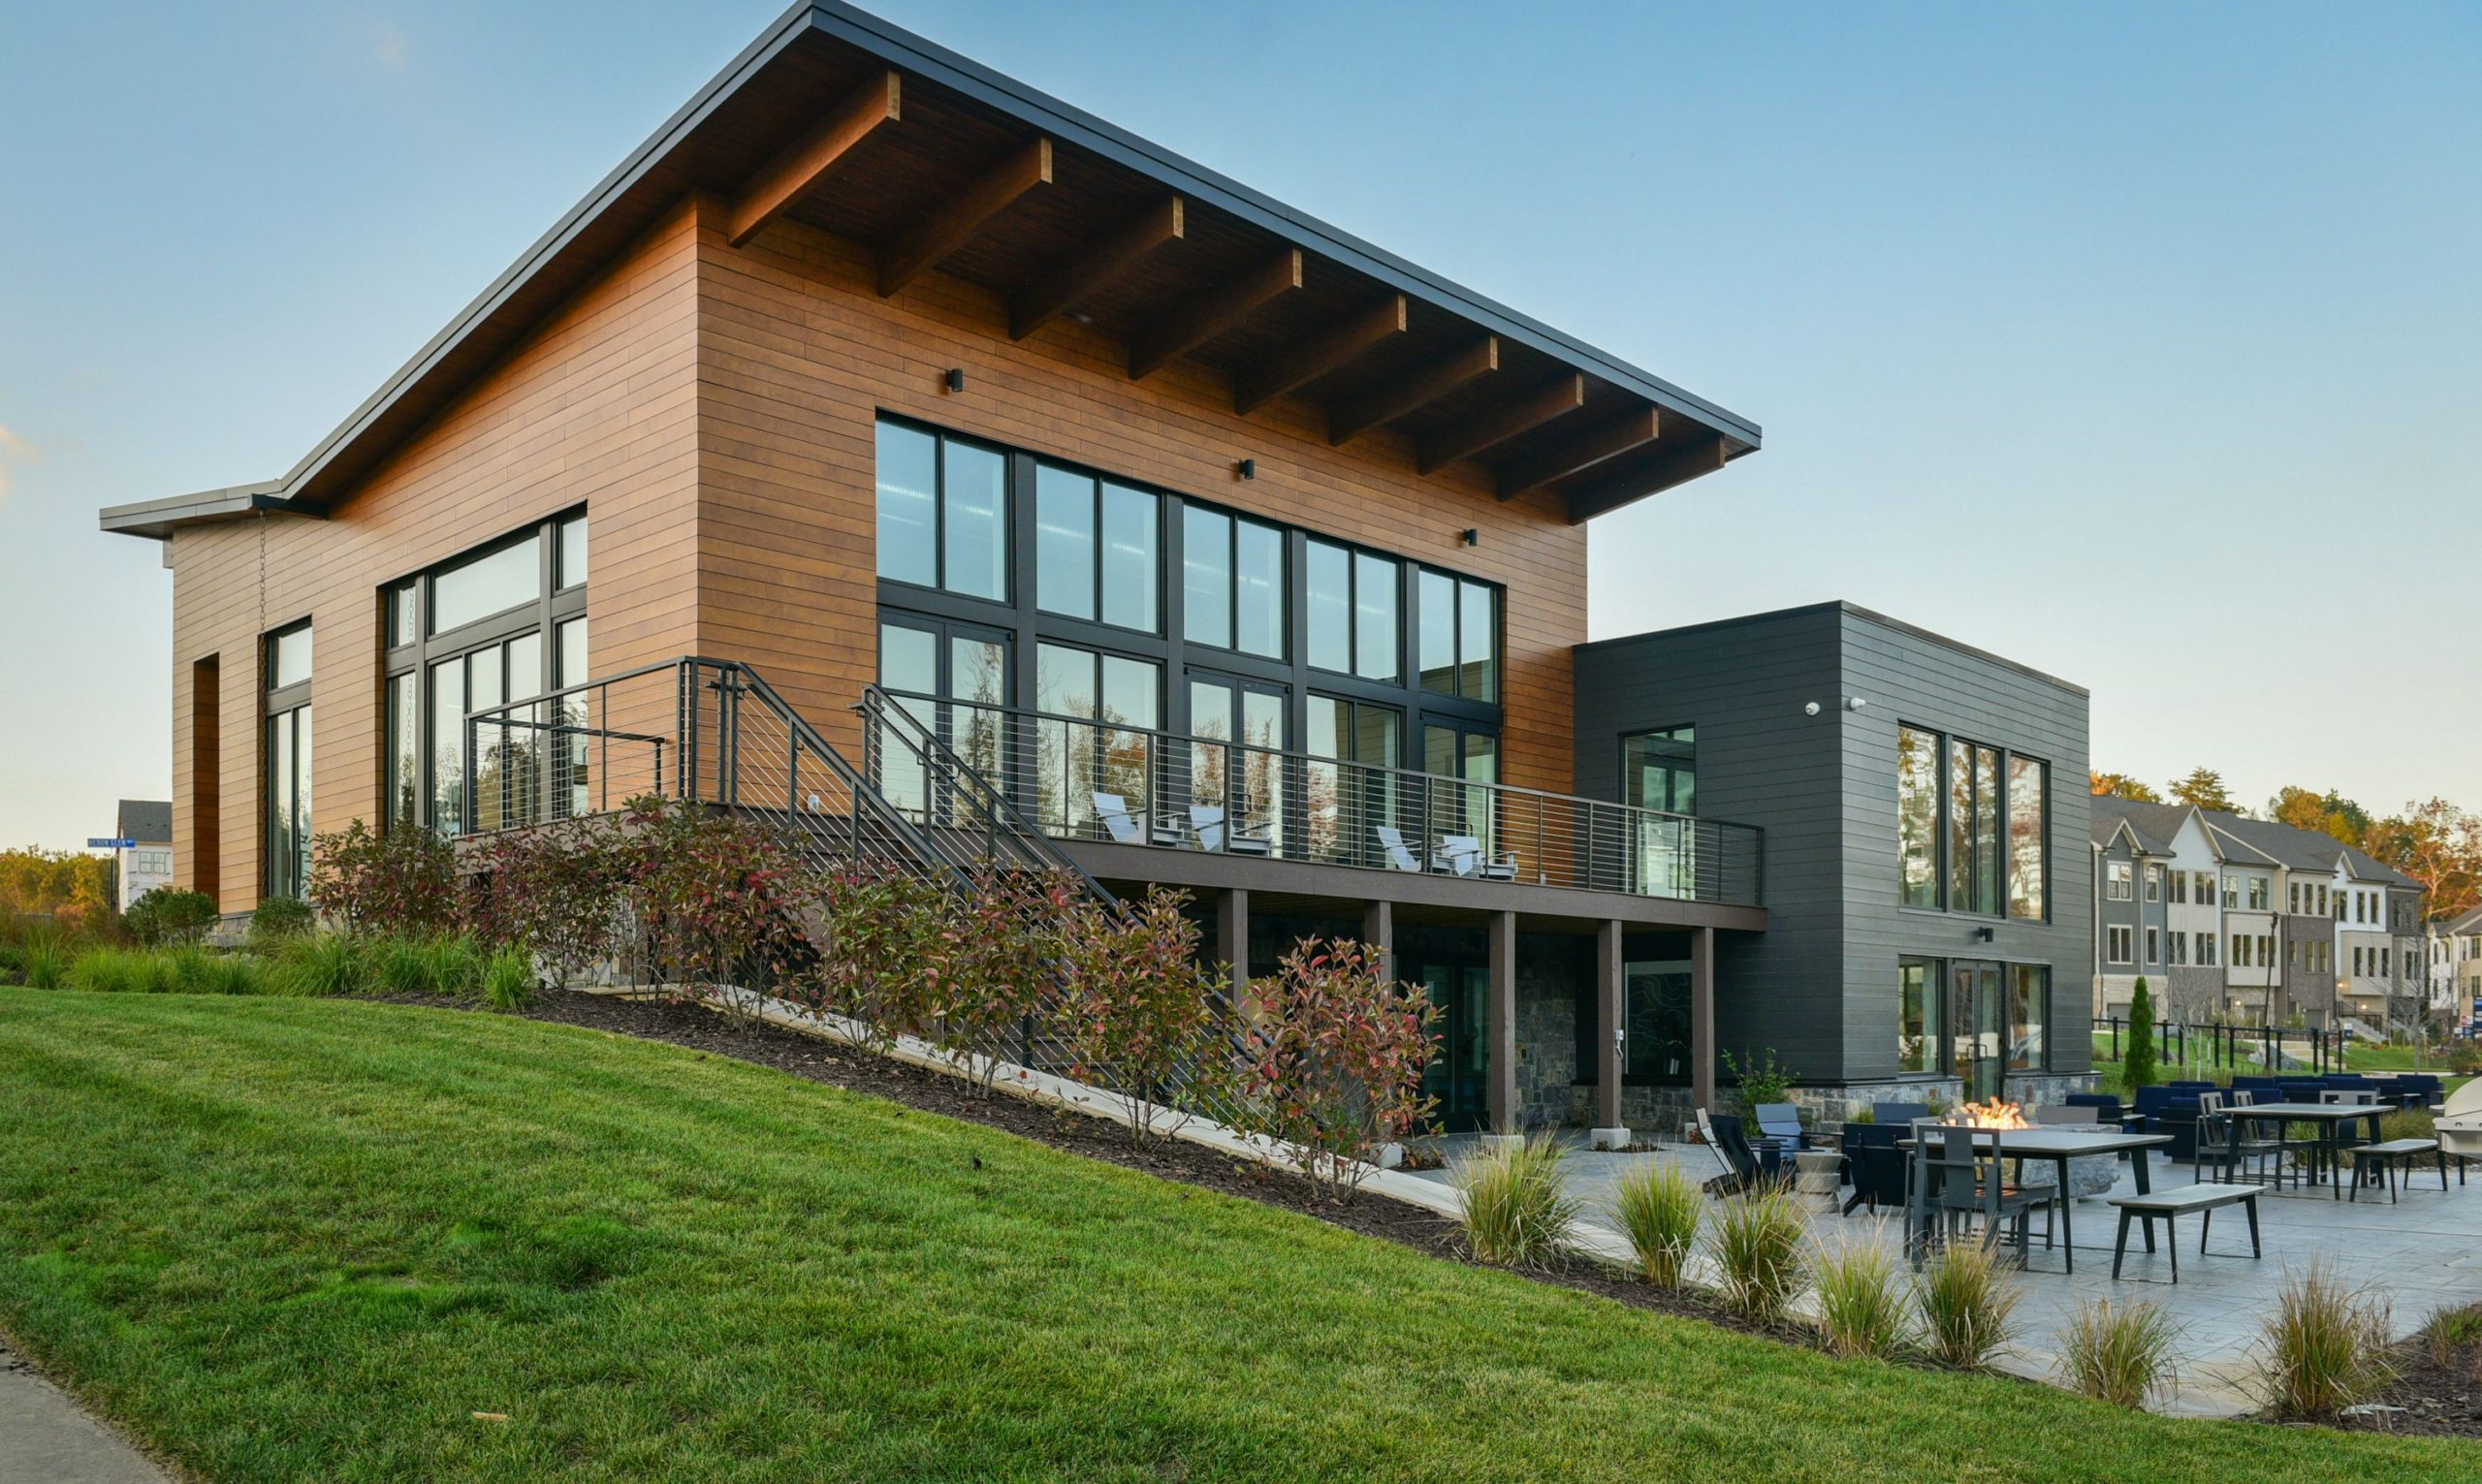 community clubhouse with scenic setting in Watershed's community of new townhomes